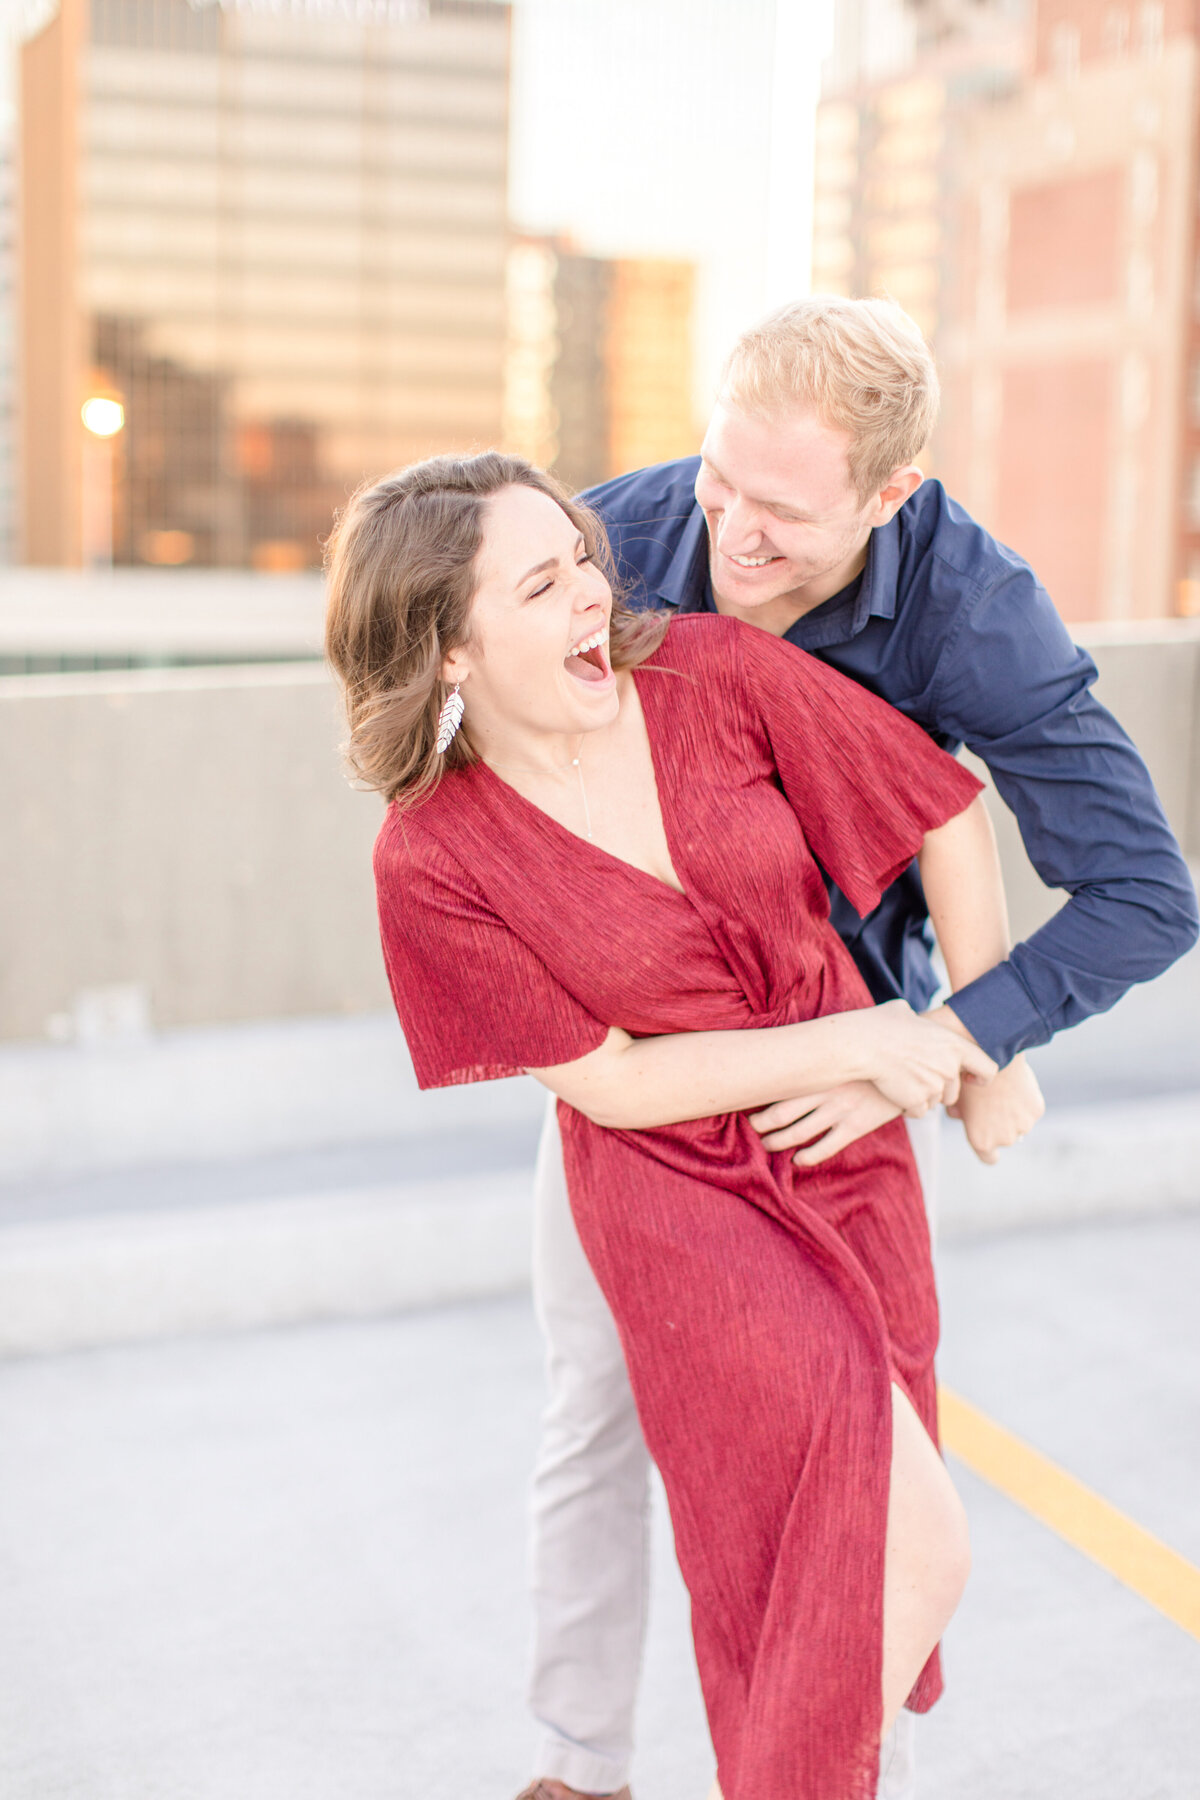 Birmingham, Alabama Wedding & Engagement Photographers - Katie & Alec Photography 37